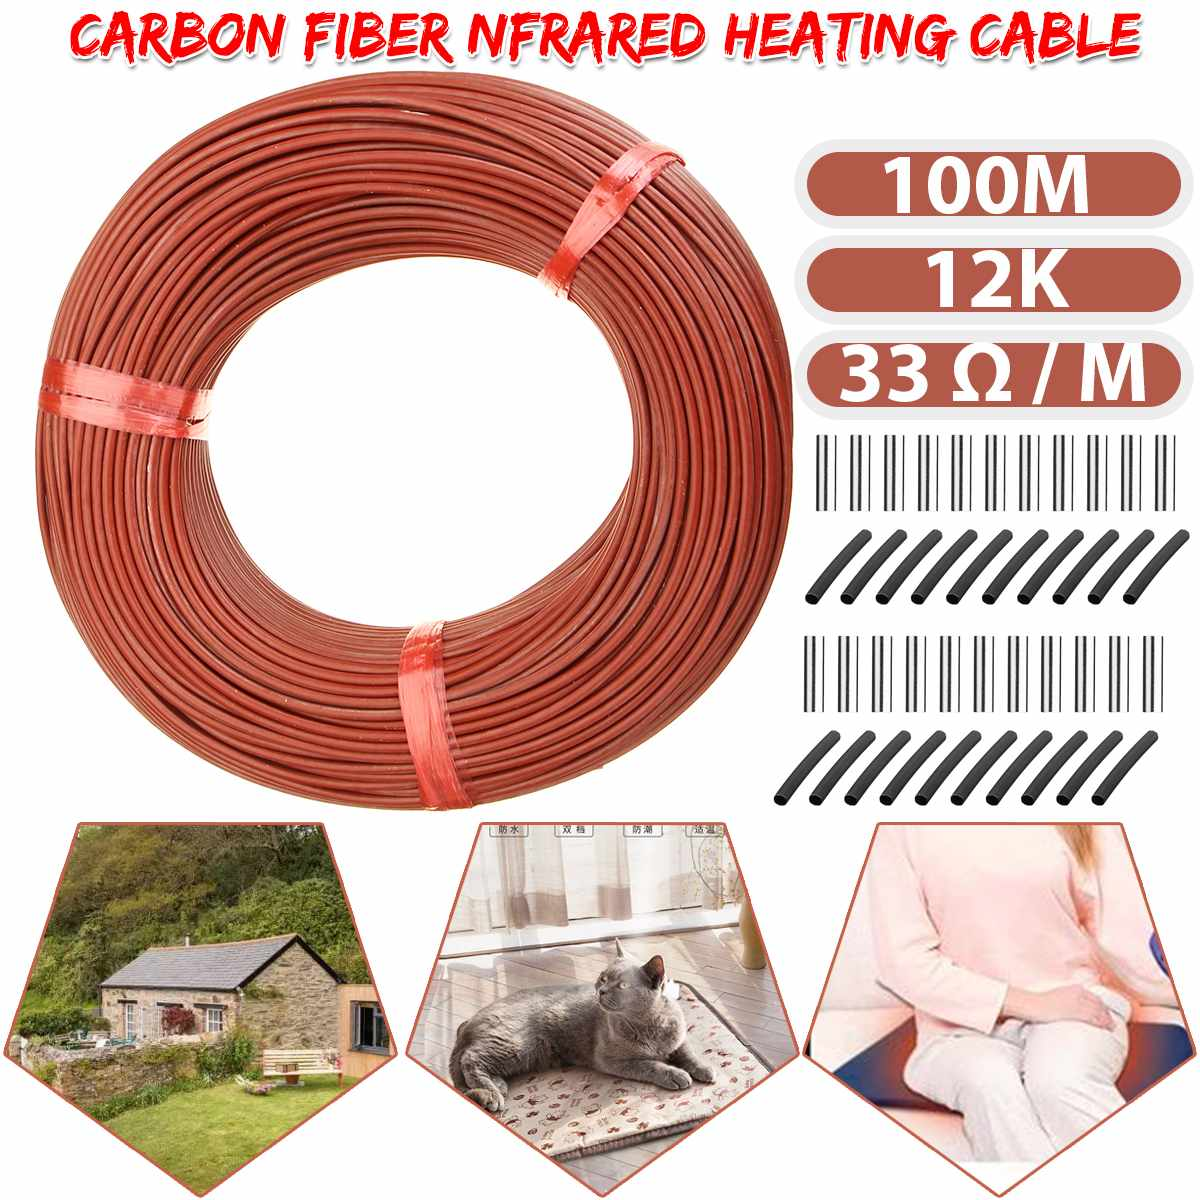 100m Infrare Carbon Fiber Heating Cable/Wire Warming Floor Home Improvement Greenhouse Vegetables Farm Heating Safe Insulated